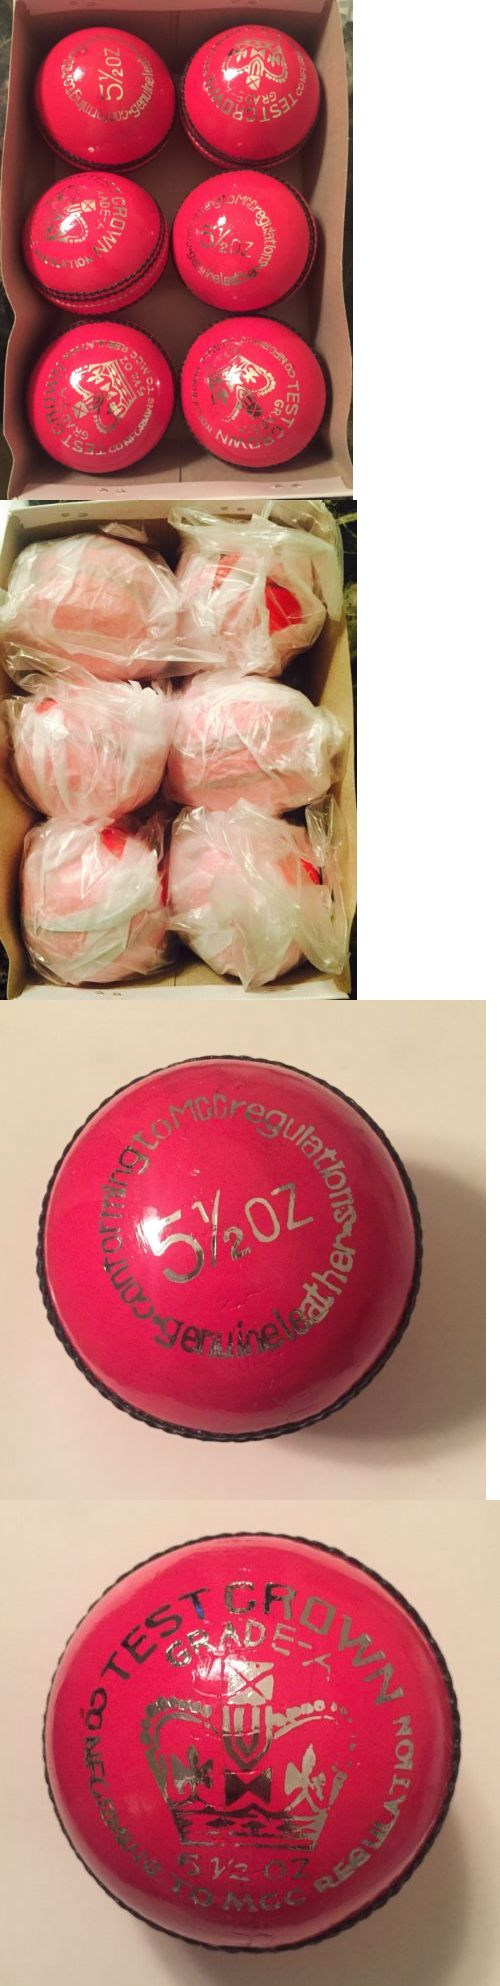 Cricket 2906: Nwt 6 Pink Test Cricket Ball Leather Entirely Hand Stitched, 5.5Oz For 25 Overs -> BUY IT NOW ONLY: $59.99 on eBay!